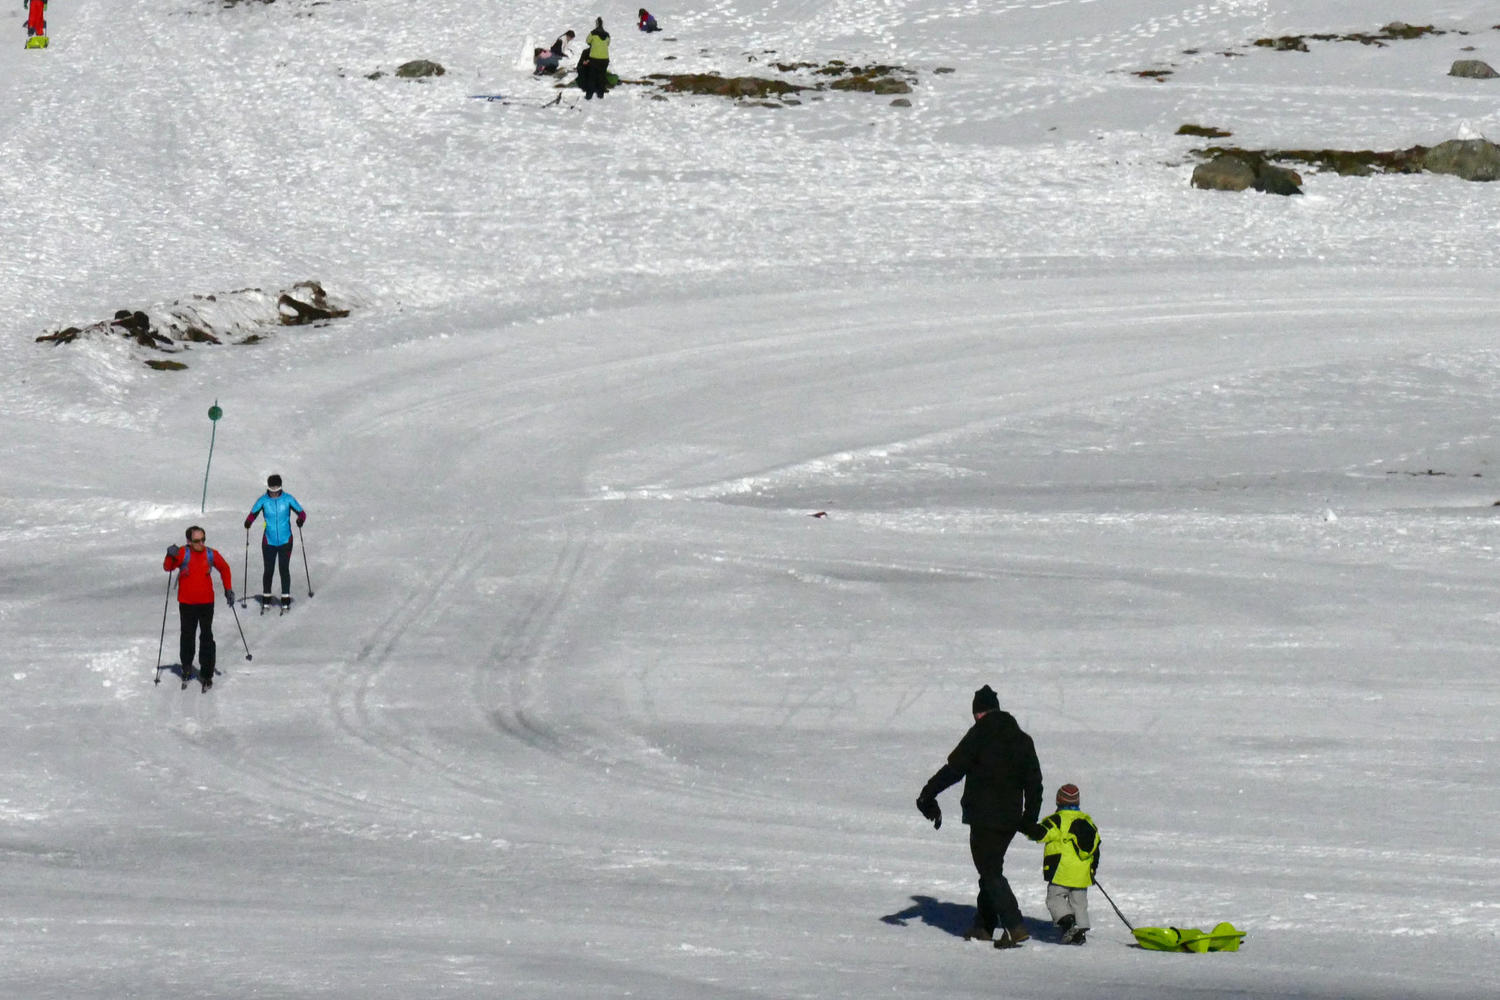 Llanos del Hospital is great for a range of other snow-based activities